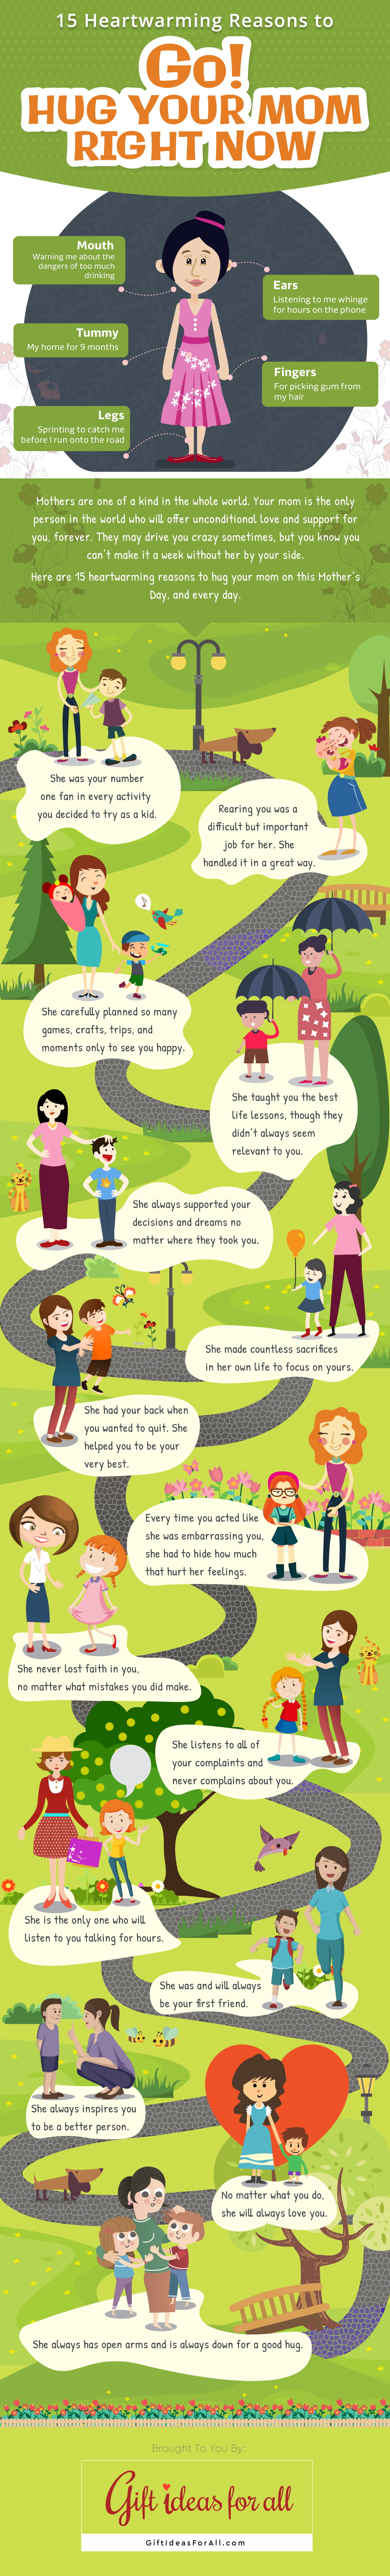 This Is Why You Must Hug Your Mom RIGHT NOW! - Infographic